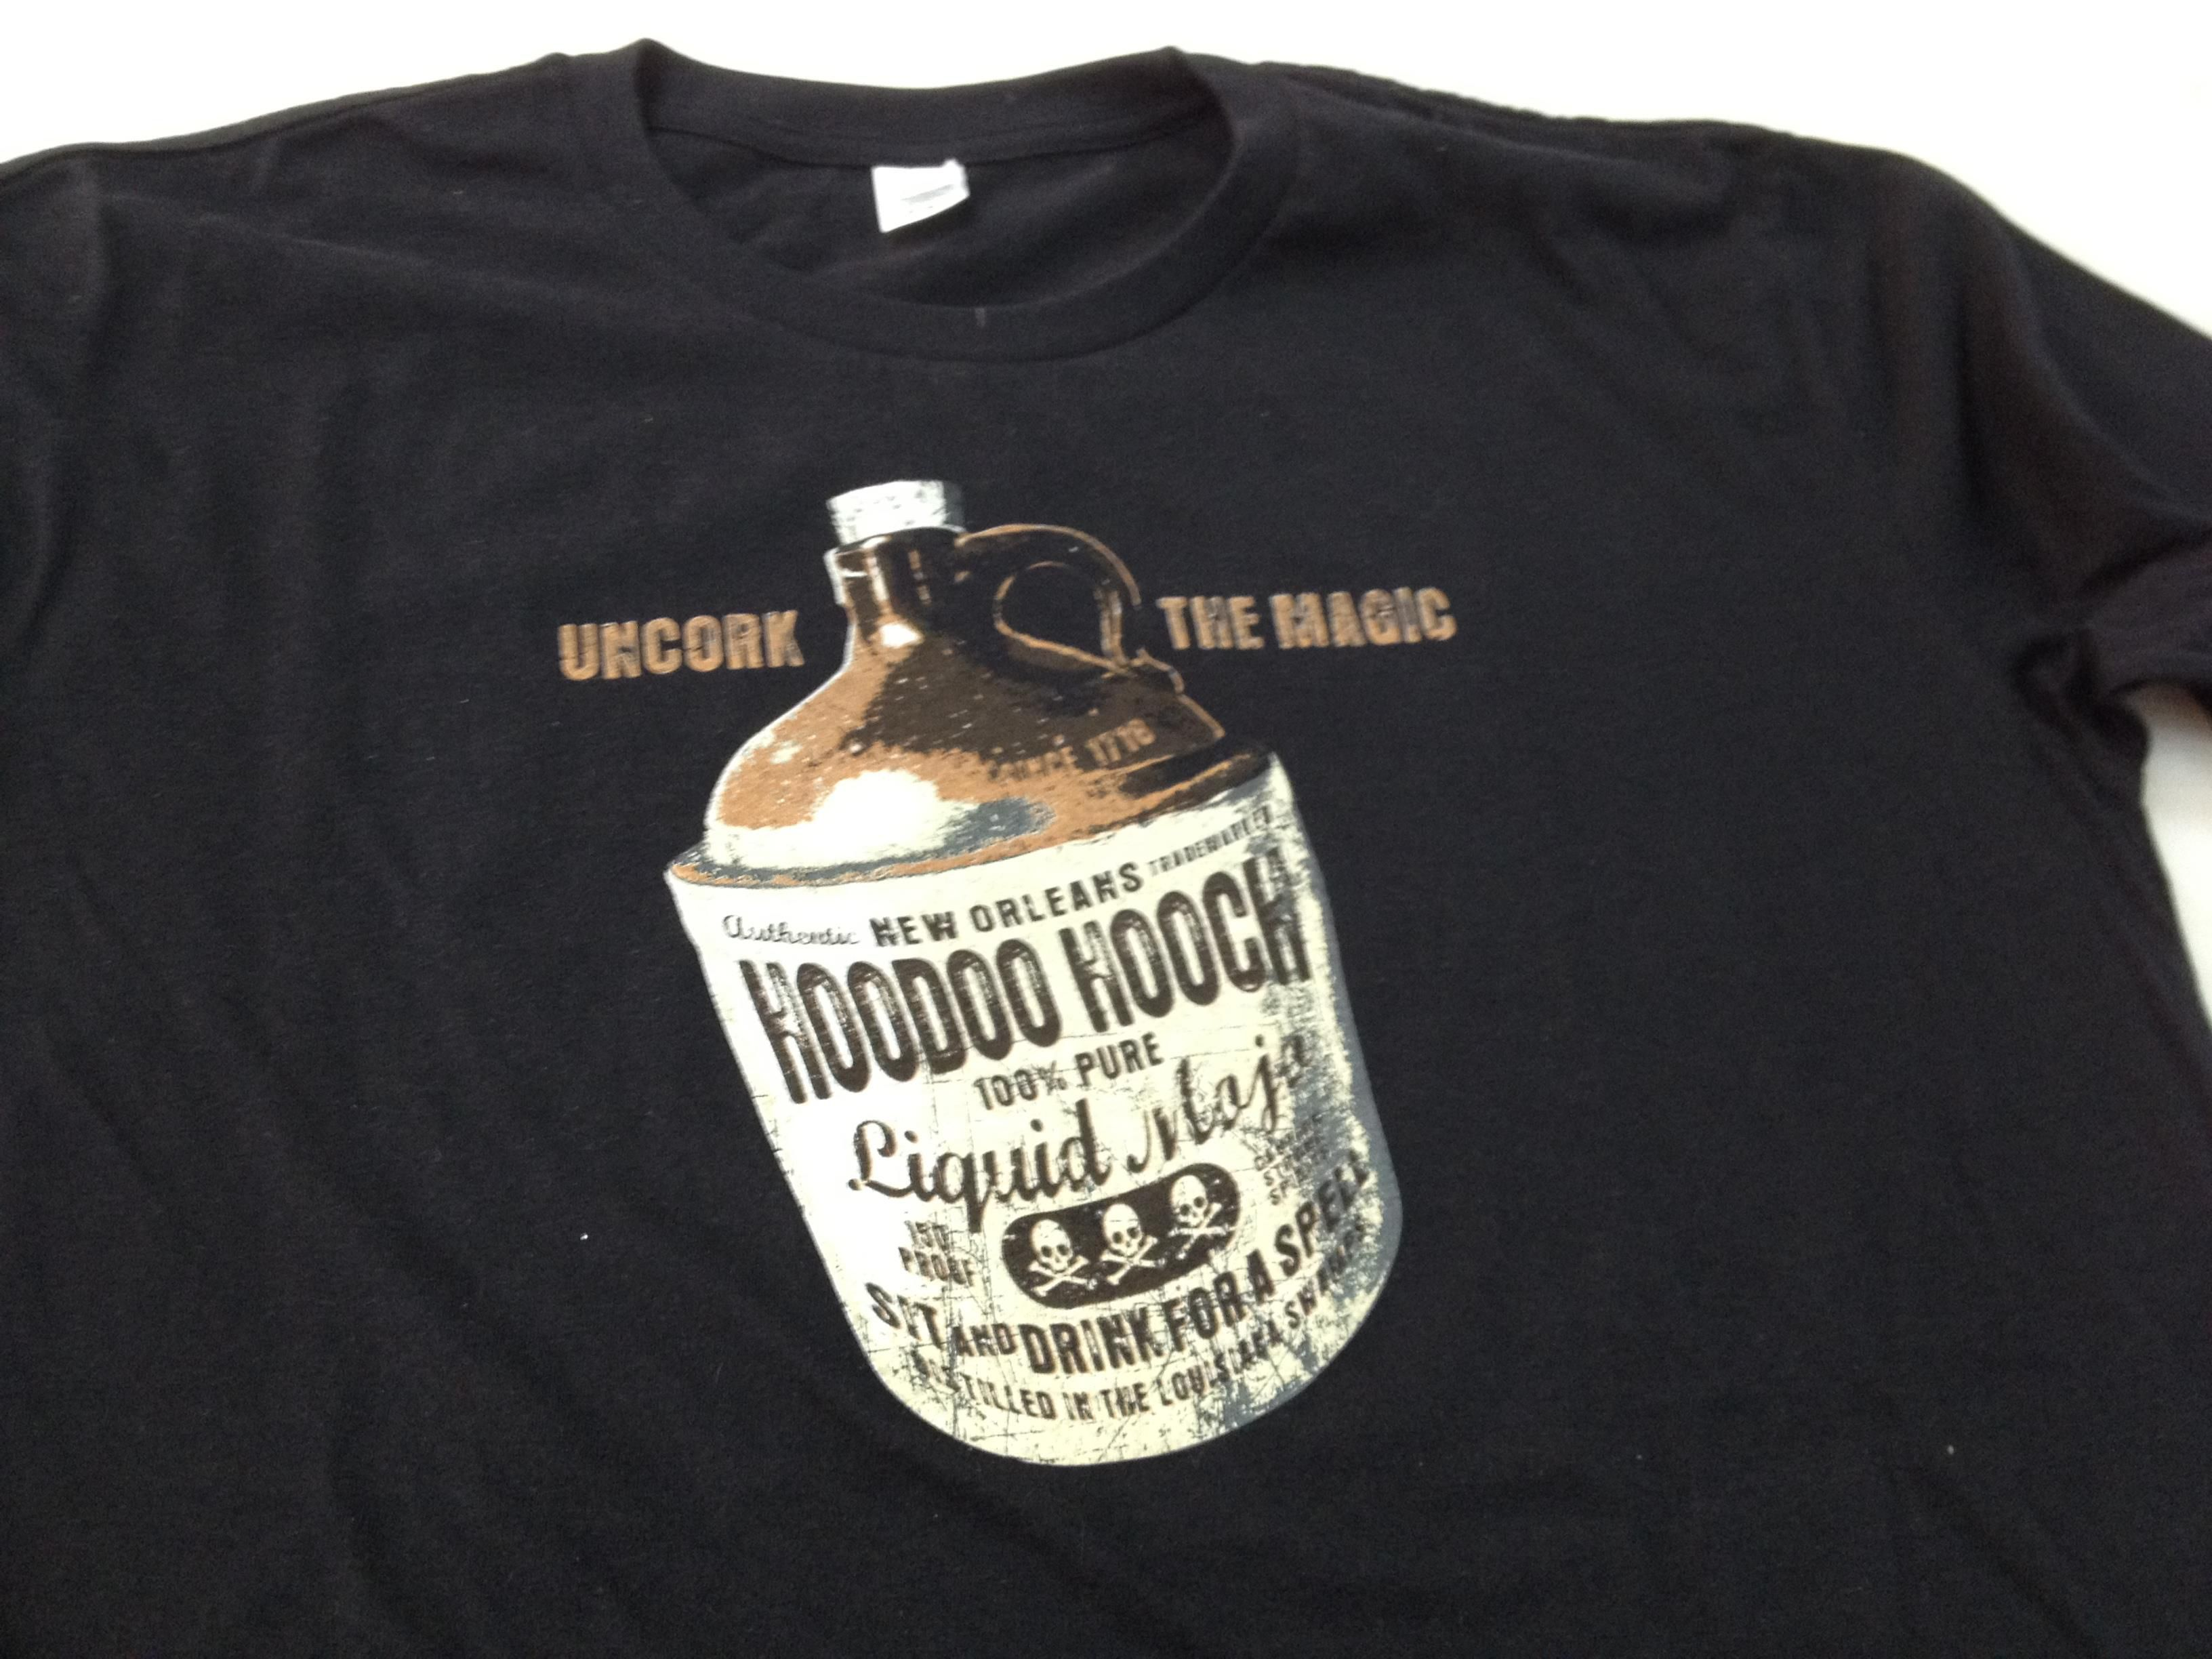 Screen Printing Ink Cost Per Shirt - DREAMWORKS